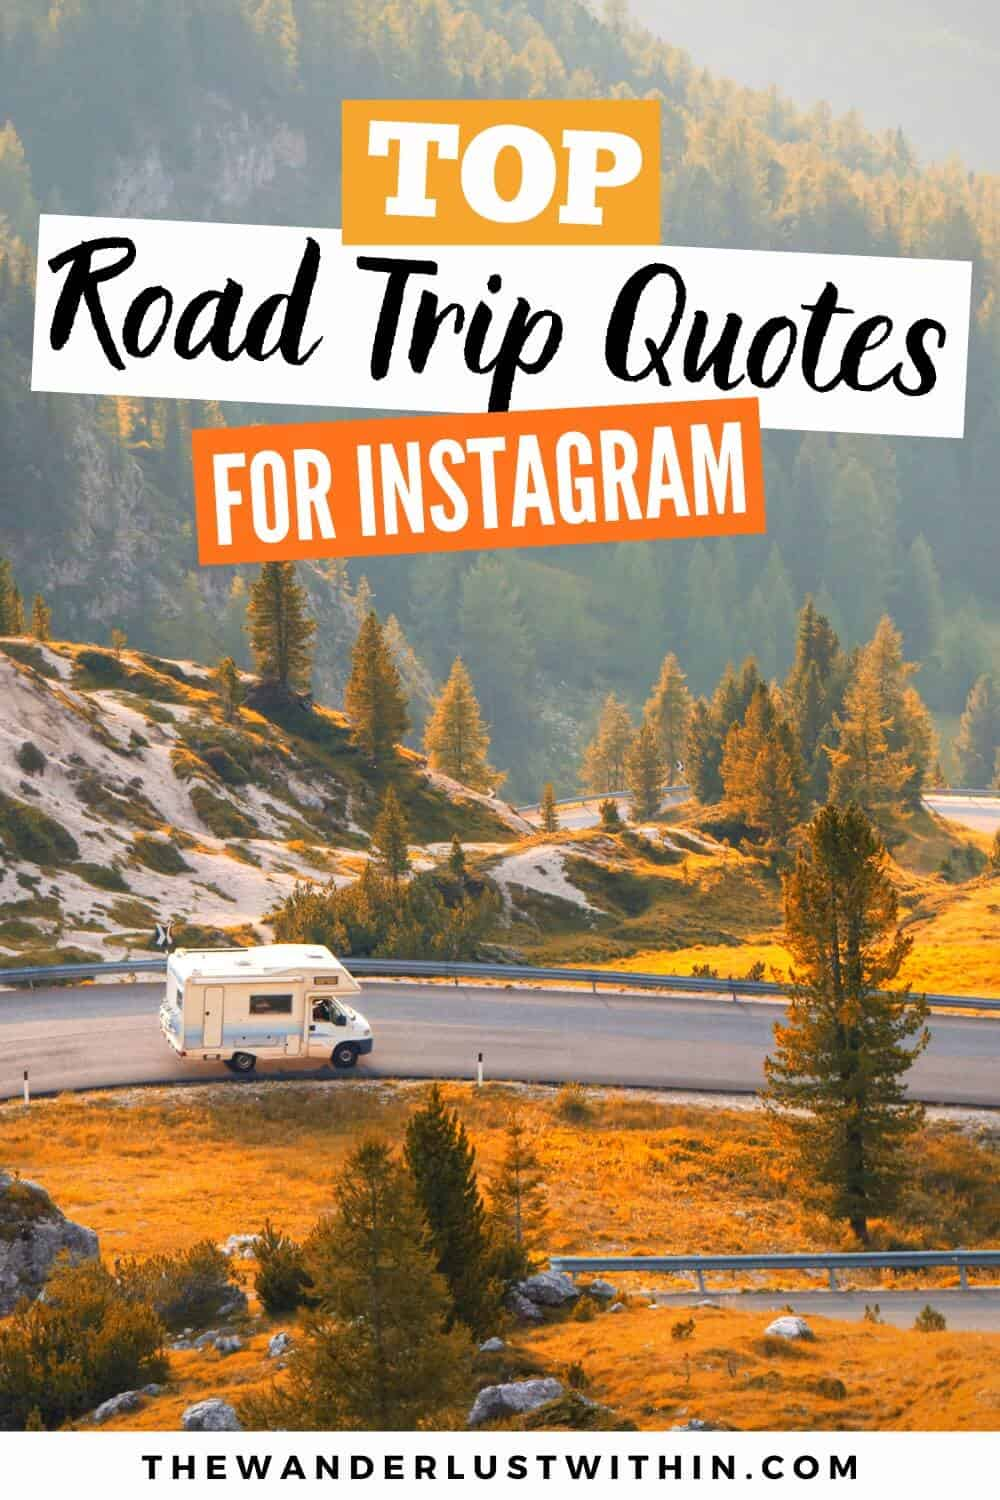 80 Awesome Road Trip Quotes To Inspire You To Hit The Road In 2021 The Wanderlust Within